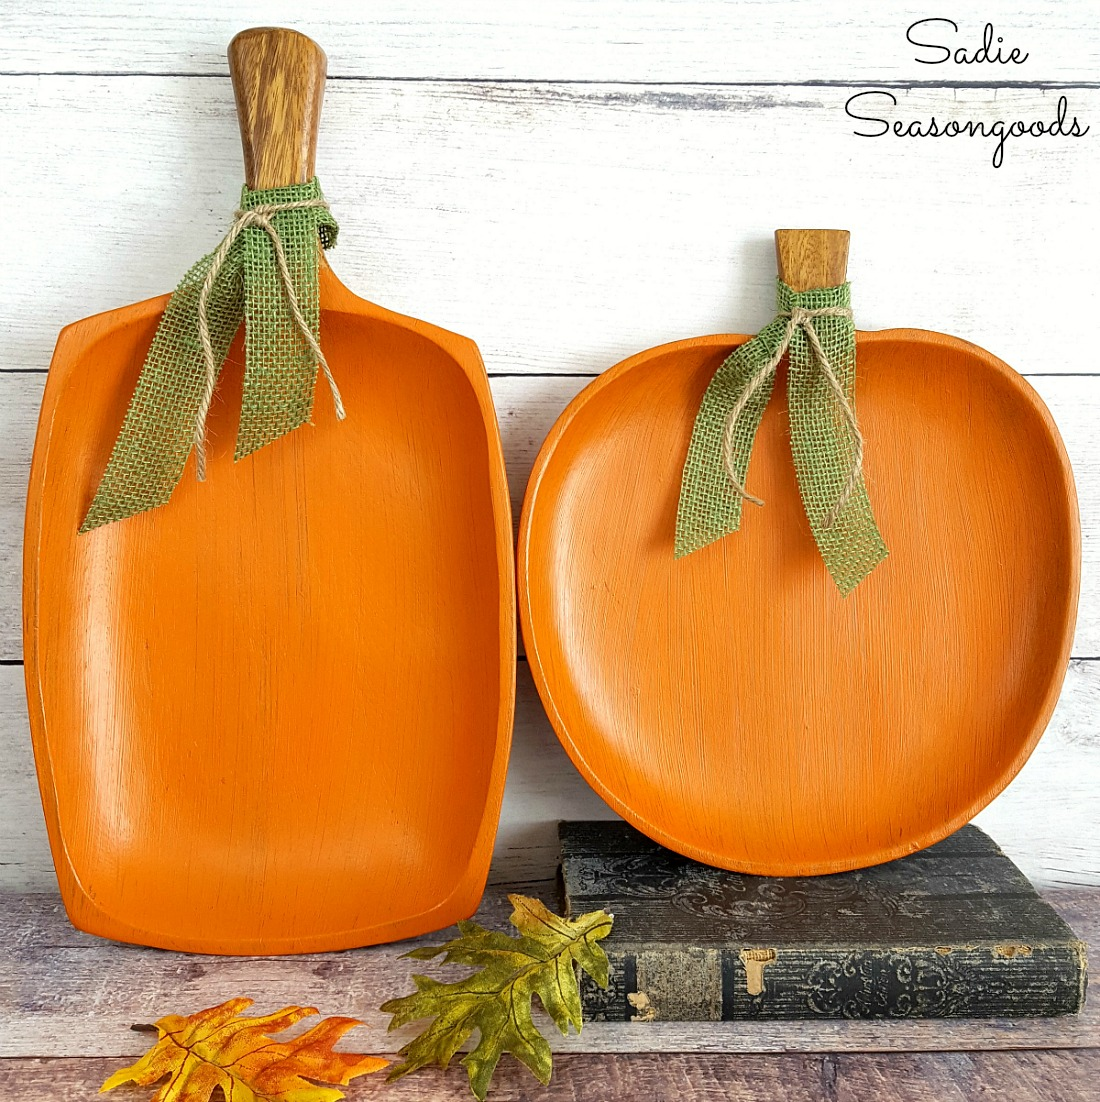 Fall decor with monkey pod wood or monkey wood that has been upcycled into decorative pumpkins with orange chalk paint by Sadie Seasongoods